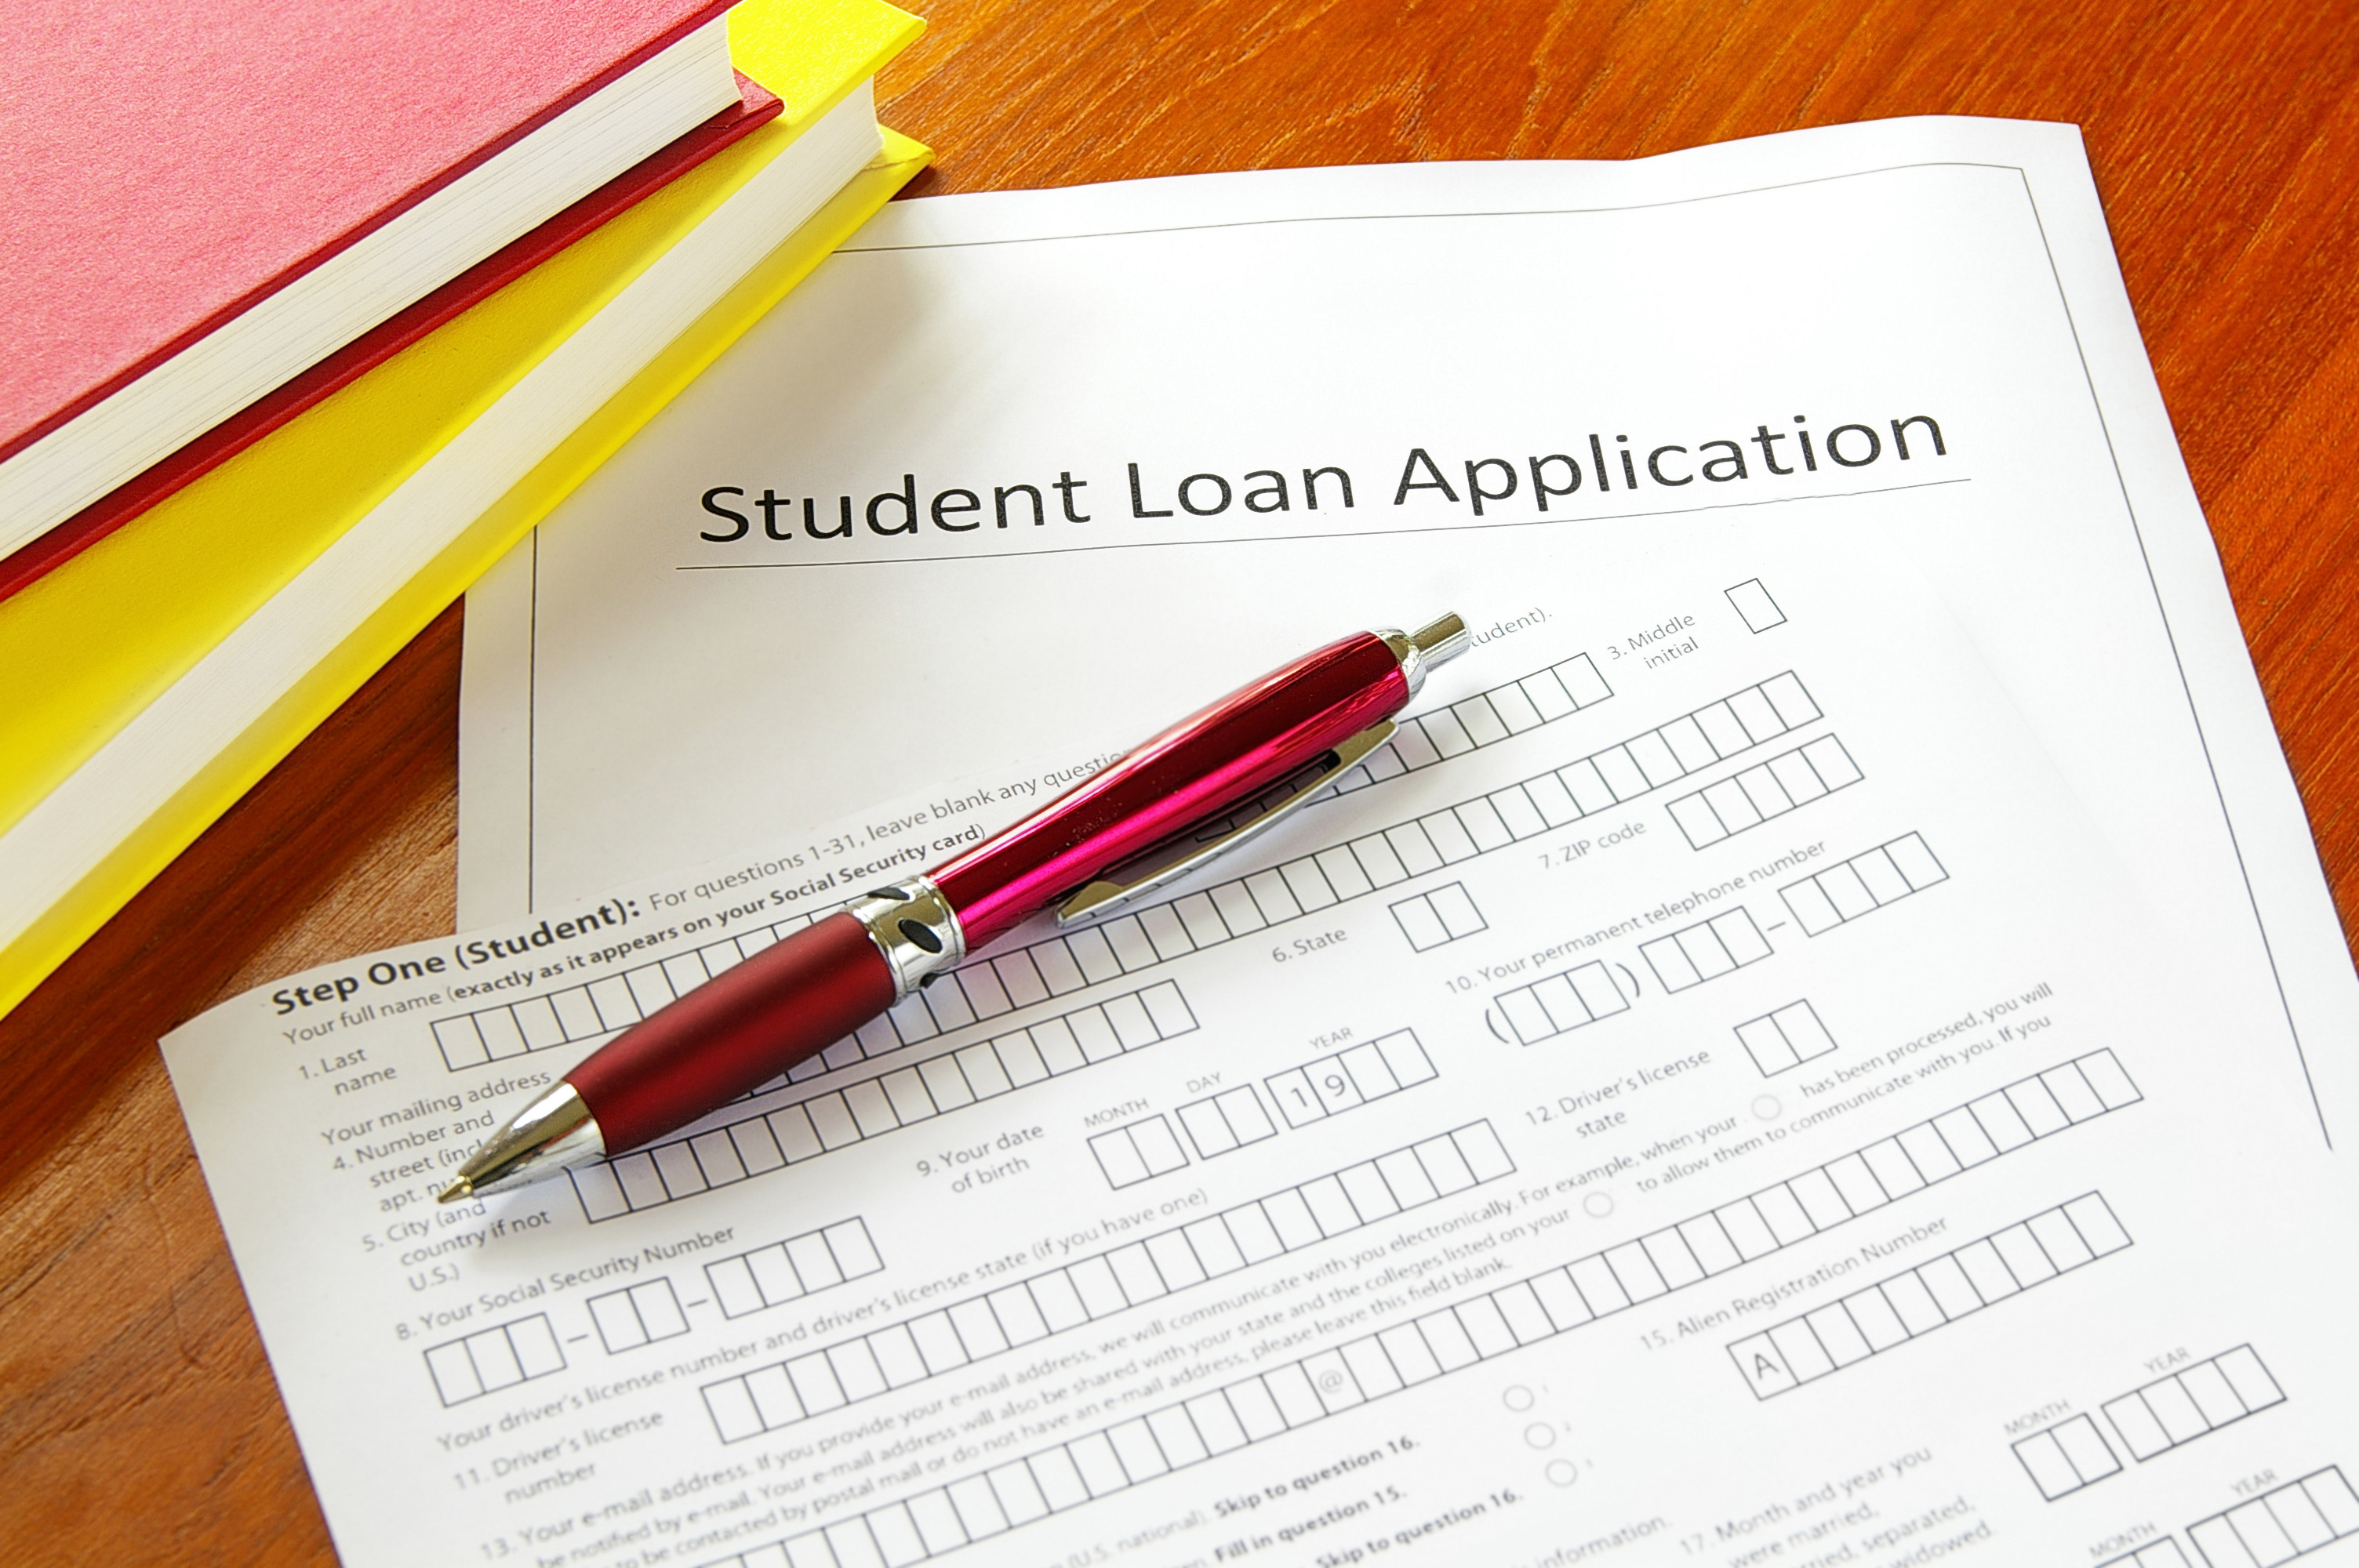 Student Loan Application.